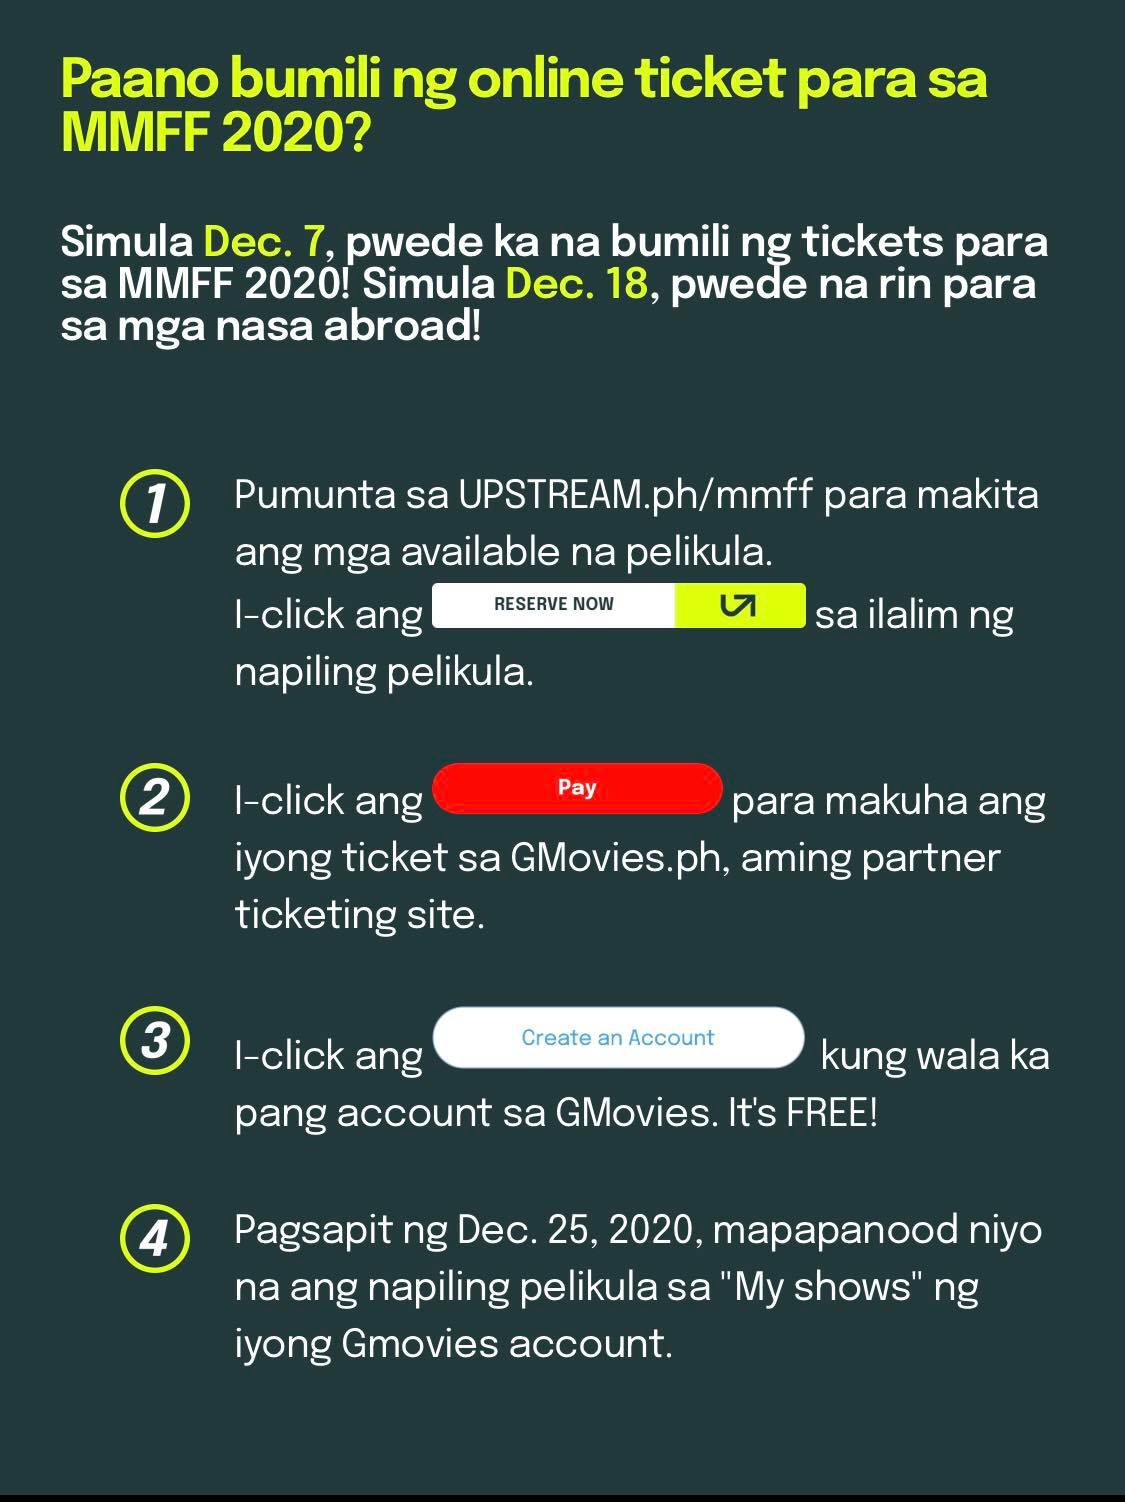 how to buy mmff 2020 movie tickets